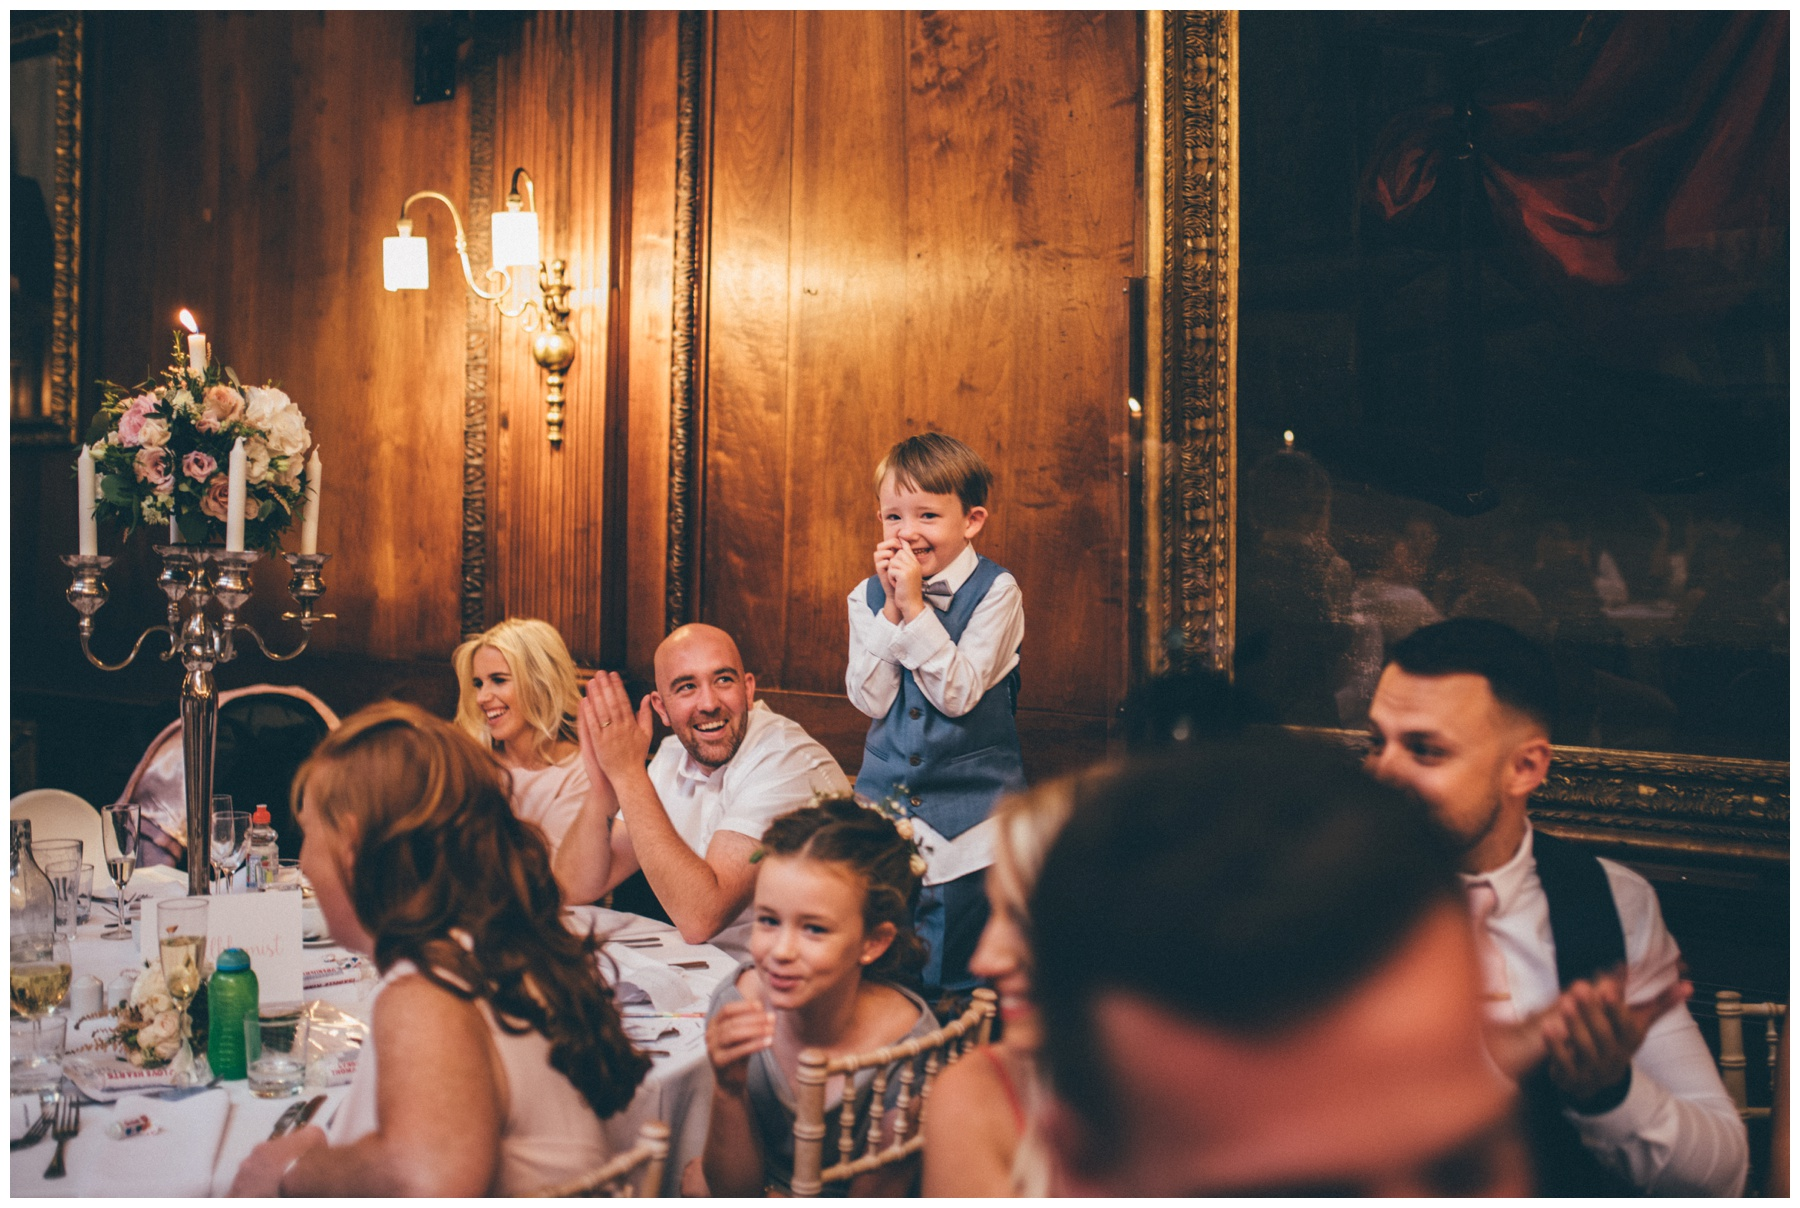 Adorable being little wedding guest gets a round of applause during the speeches at Thornton Manor on the Wirral.